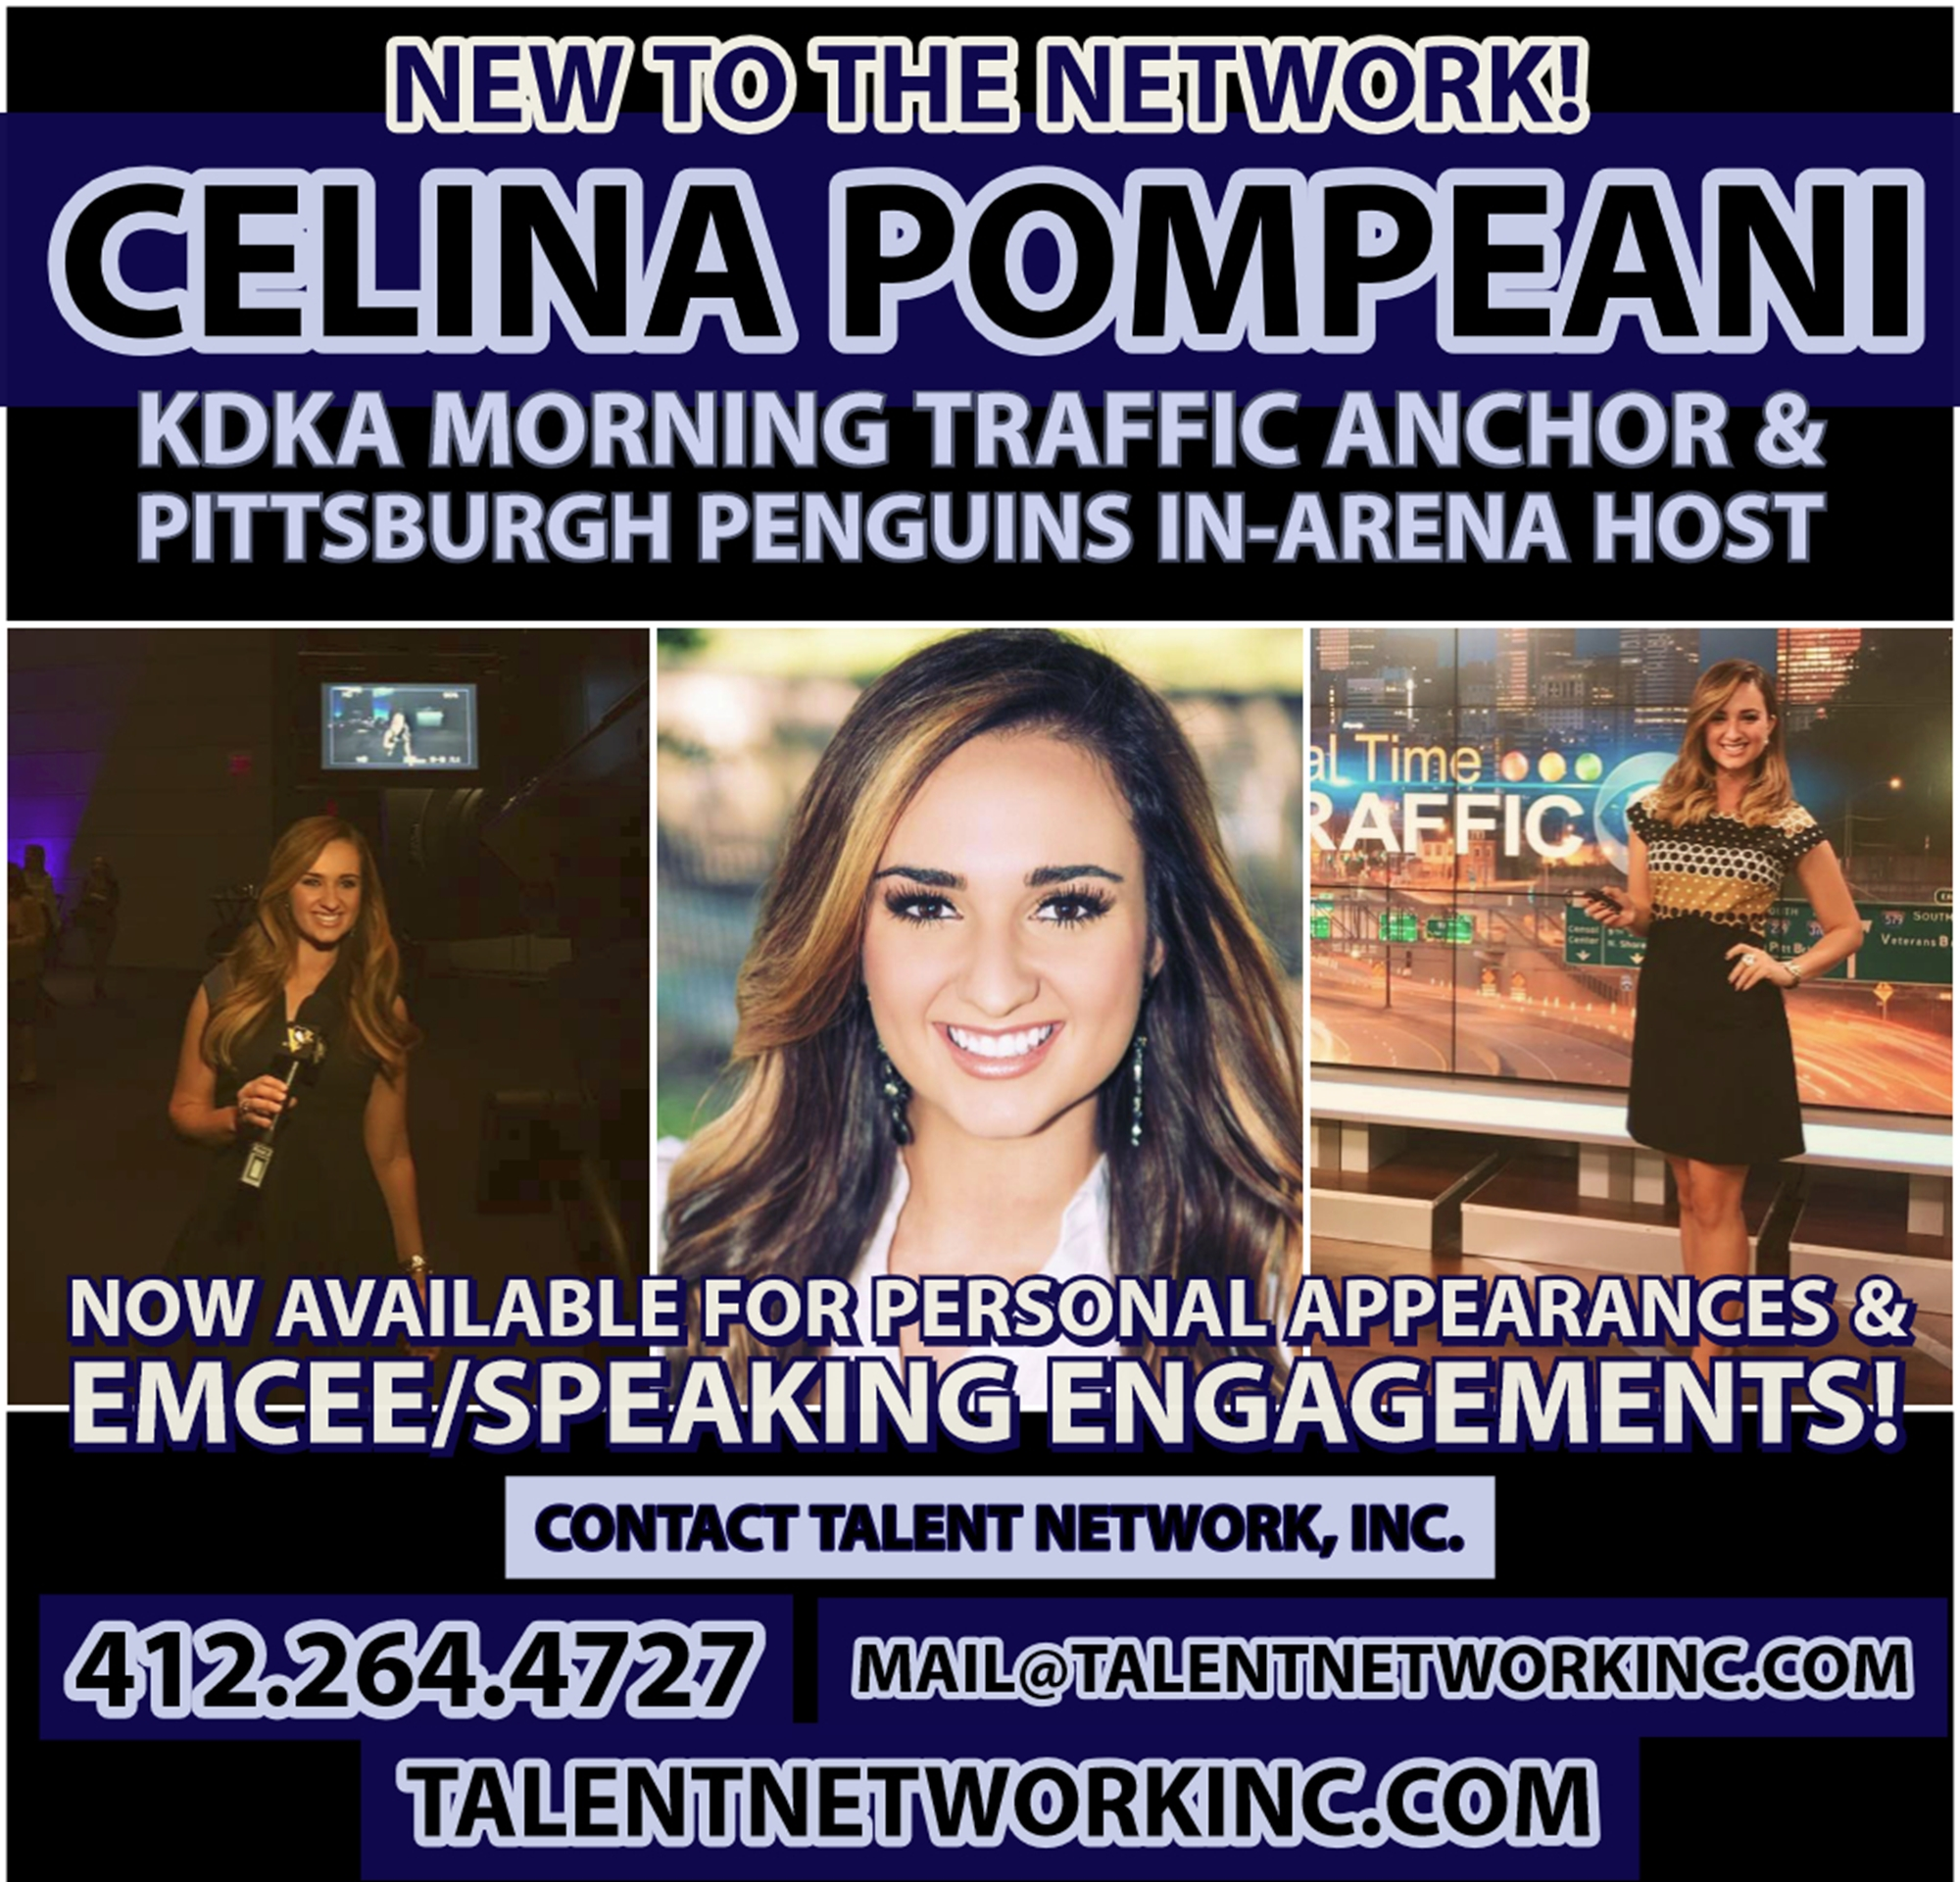 Celina Pompeani, Pittsburgh News Anchor, talent network